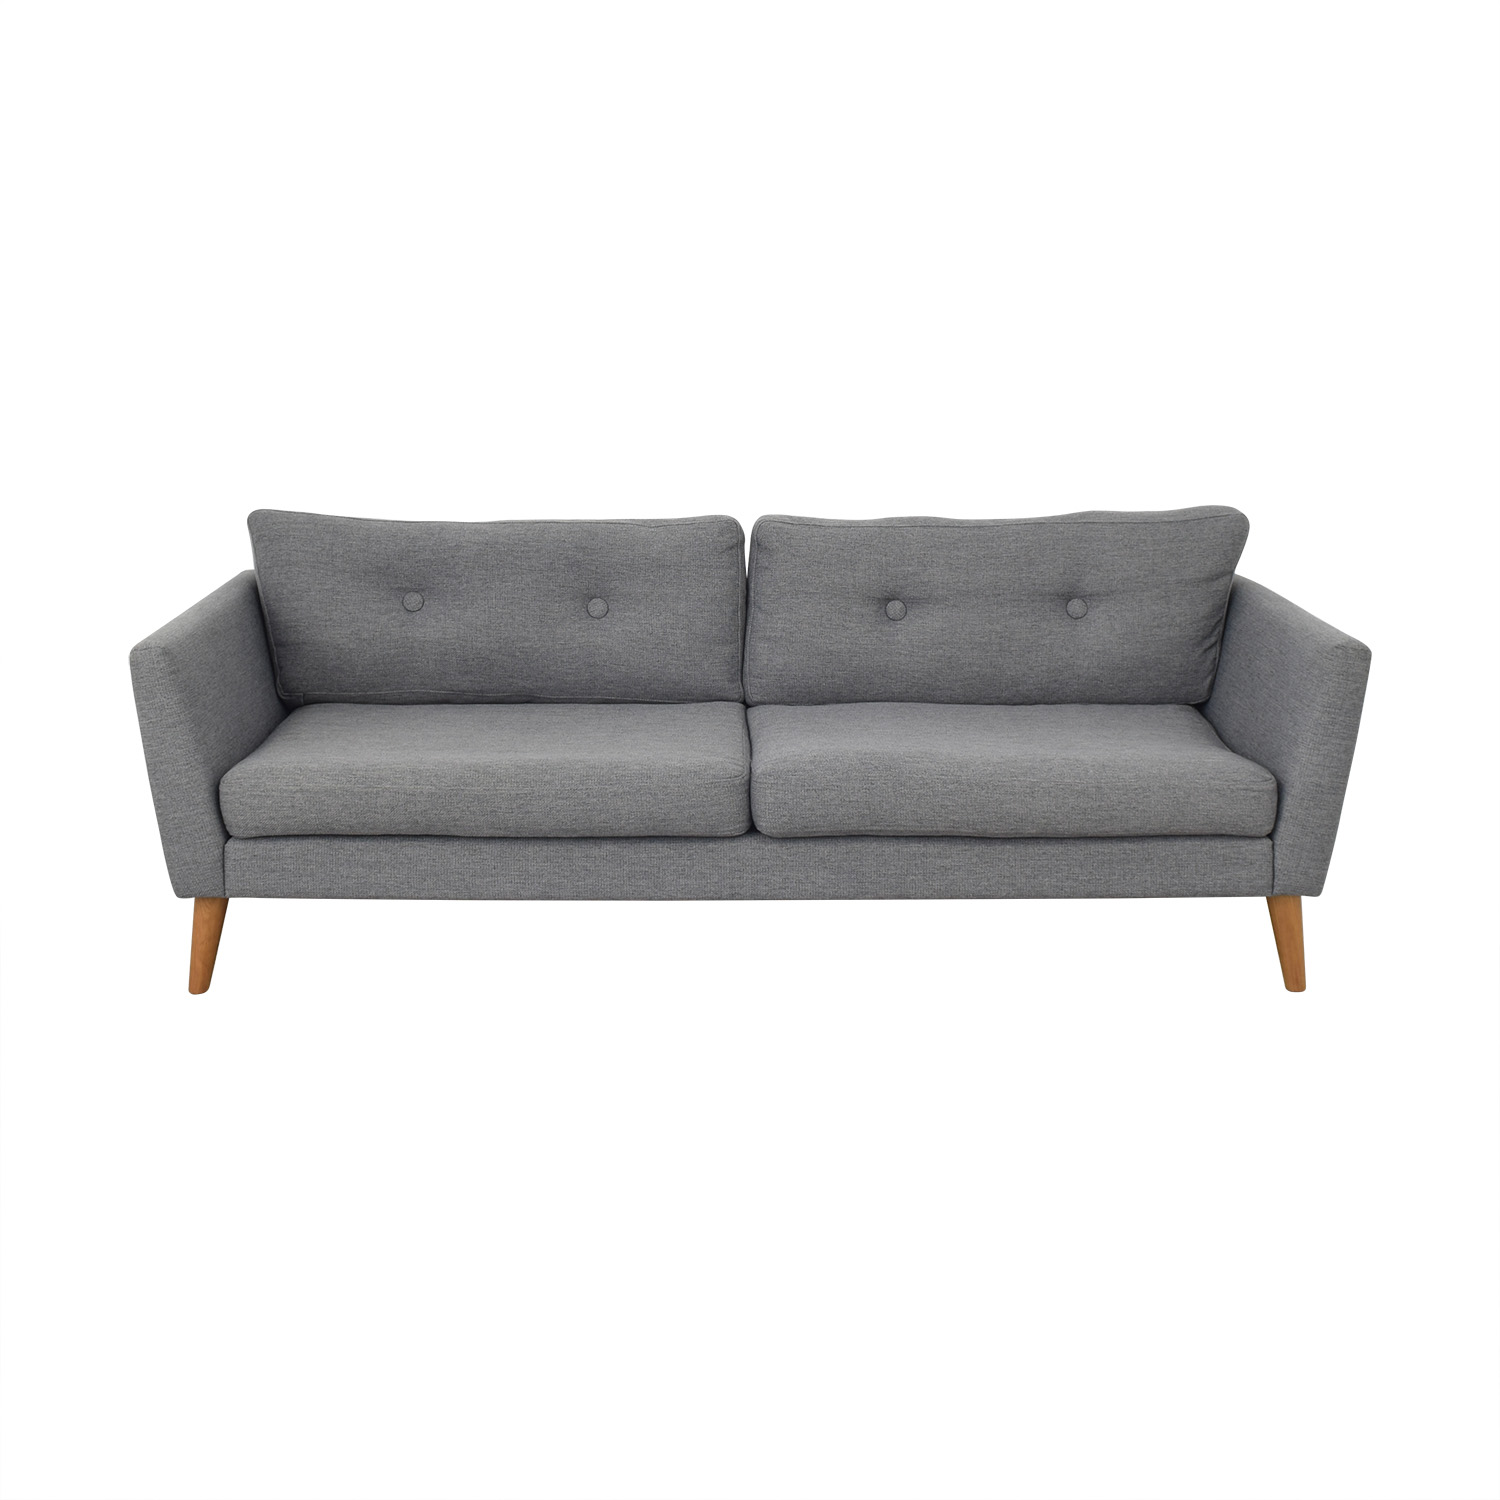 Article Article Emil Gravel Sofa ct